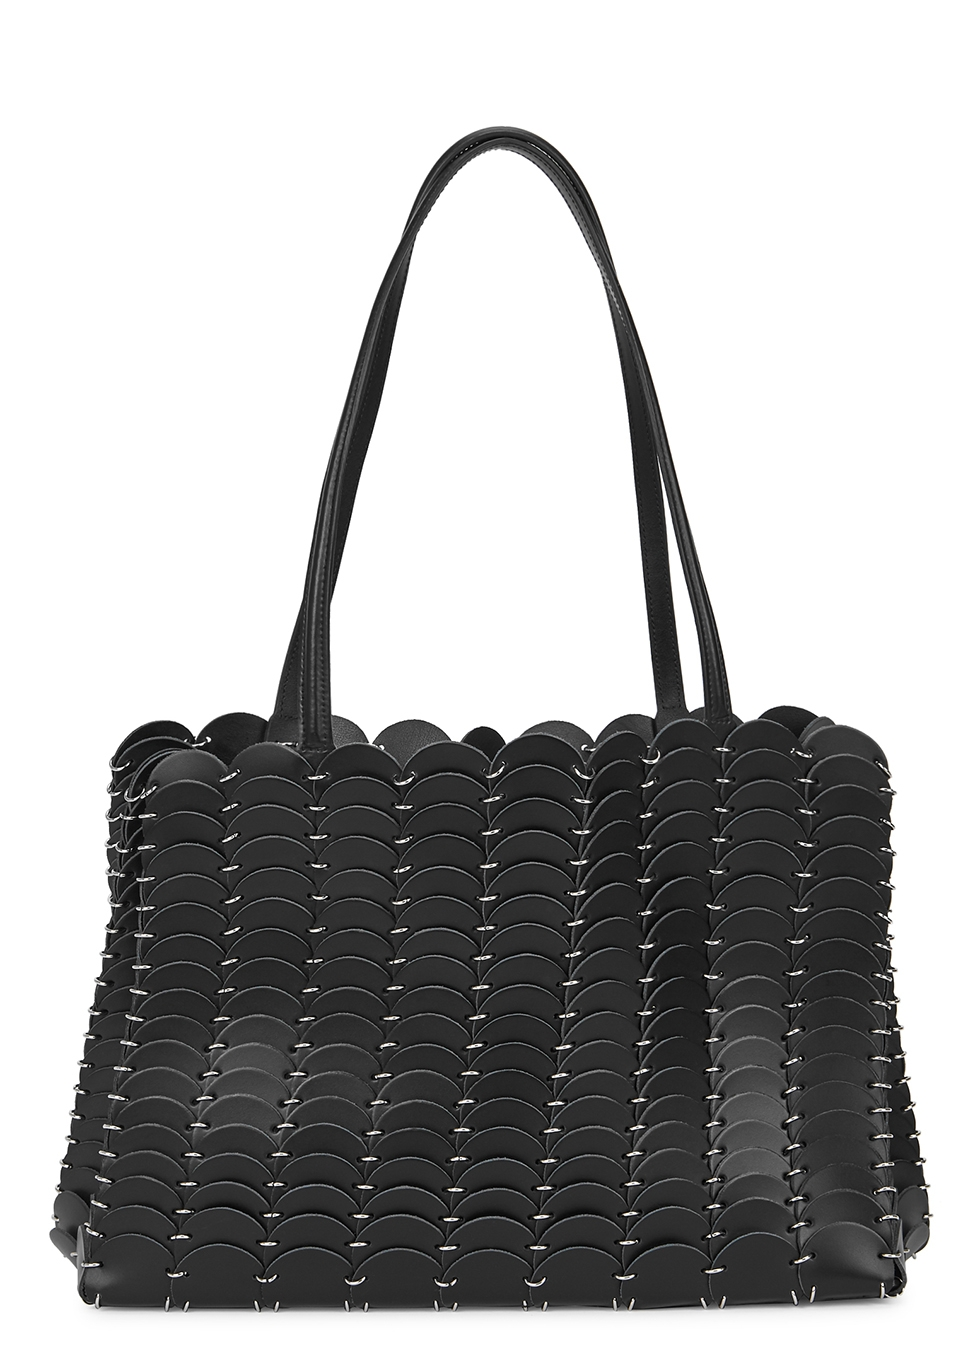 Pacoio black leather tote